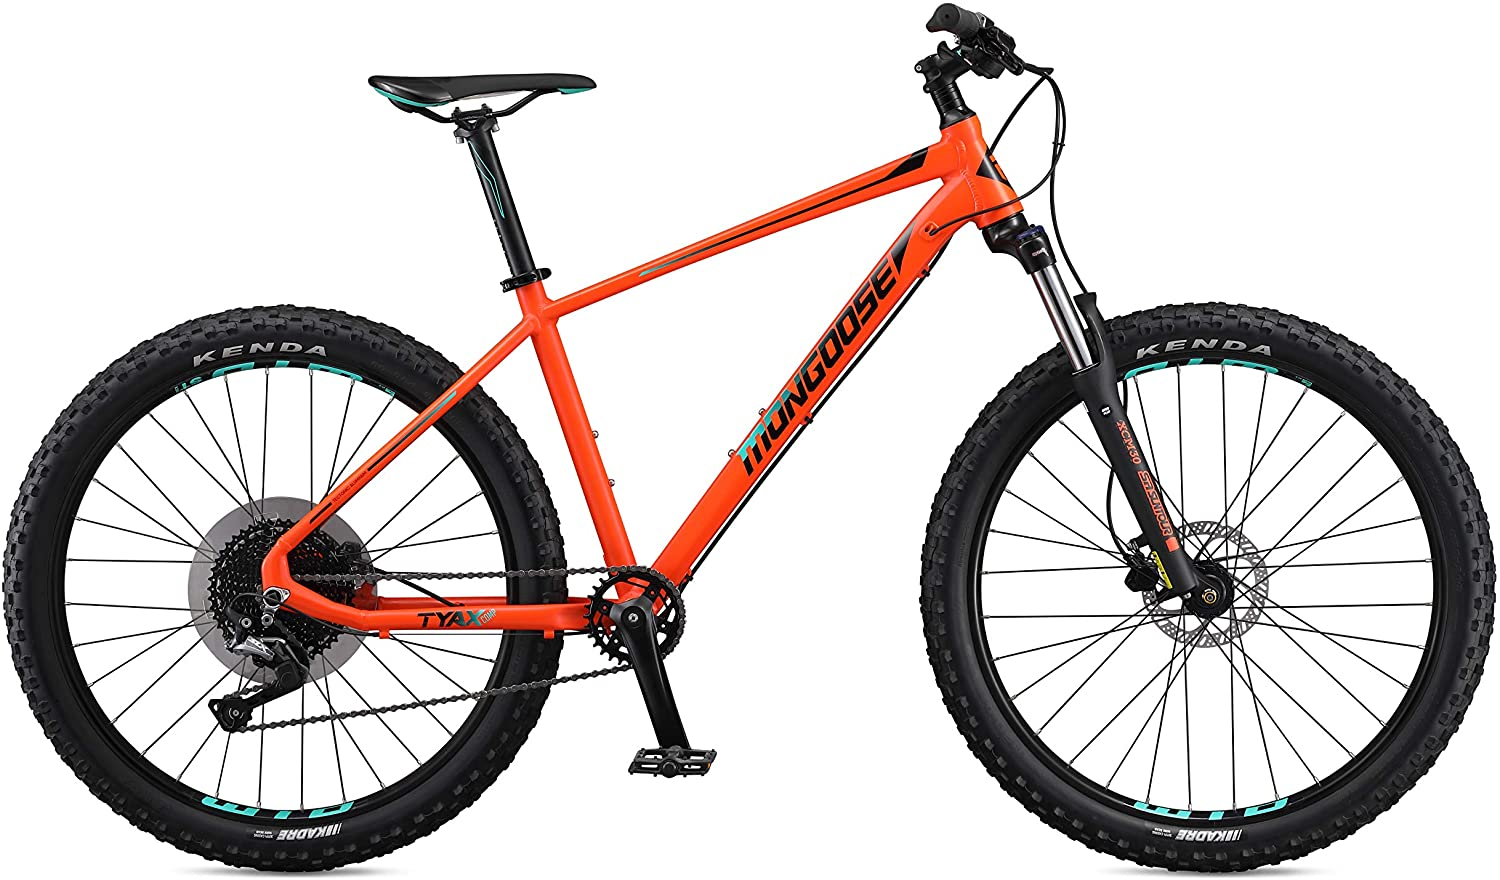 81mldNZsA6L. AC SL1500  2 15 Best Cheap Mountain Bikes - Compare Prices & Features